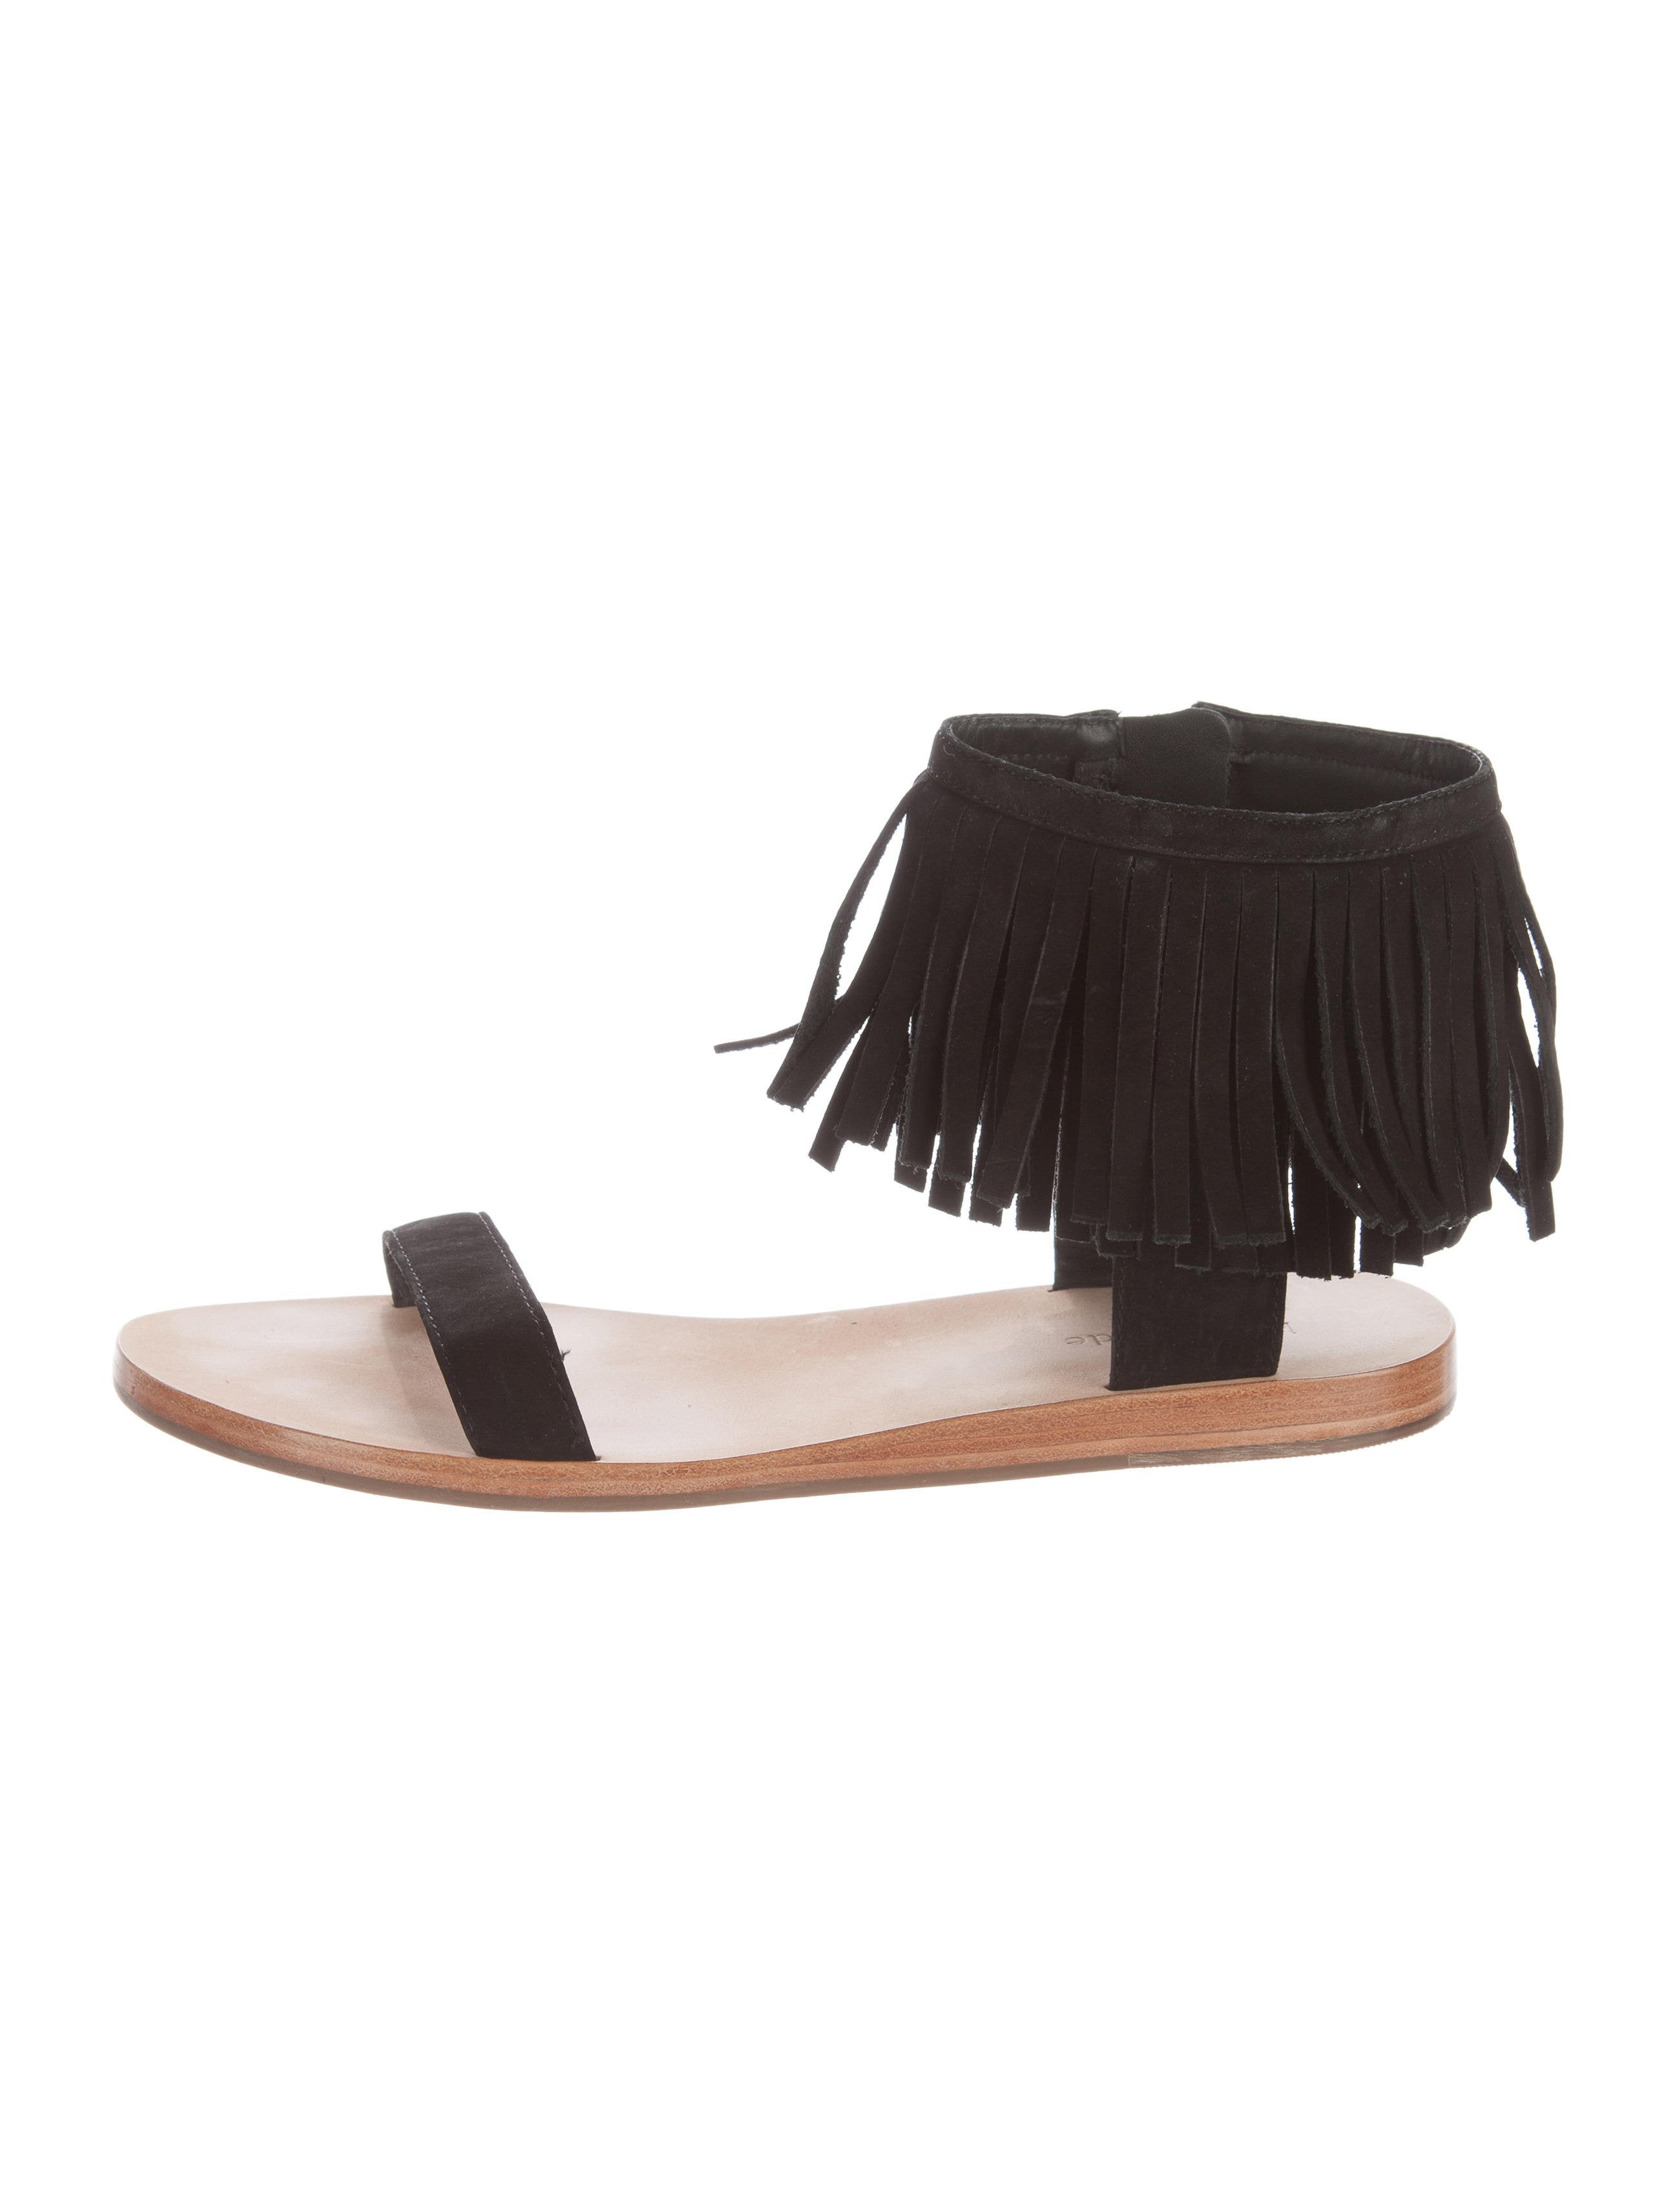 7c39c274f943 Kate Spade New York Halle Fringe Sandals - Shoes - WKA69193